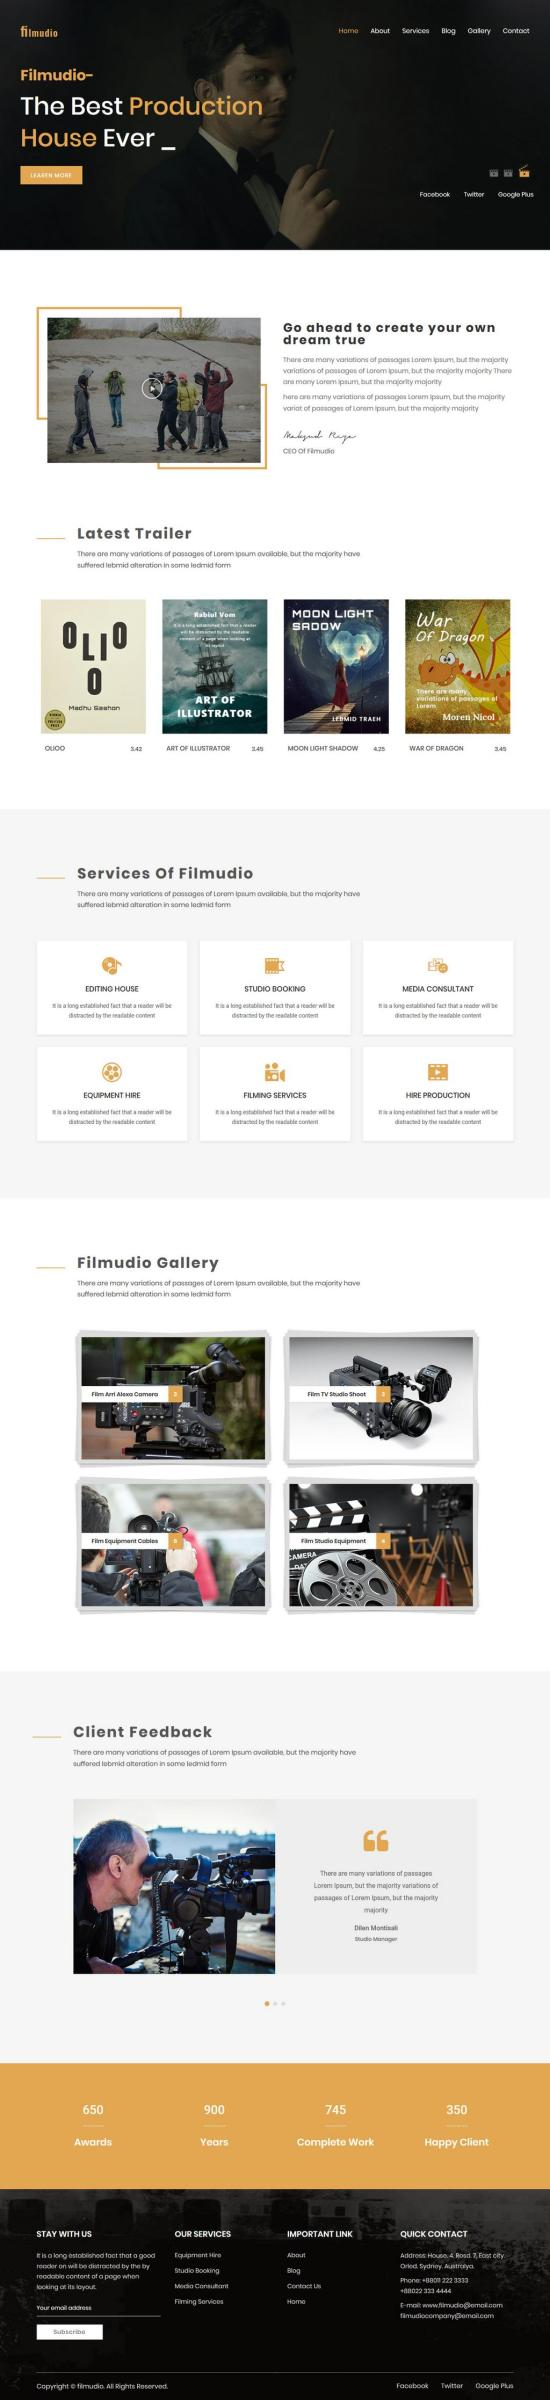 Filmudio Entertainment WordPress Theme Demo